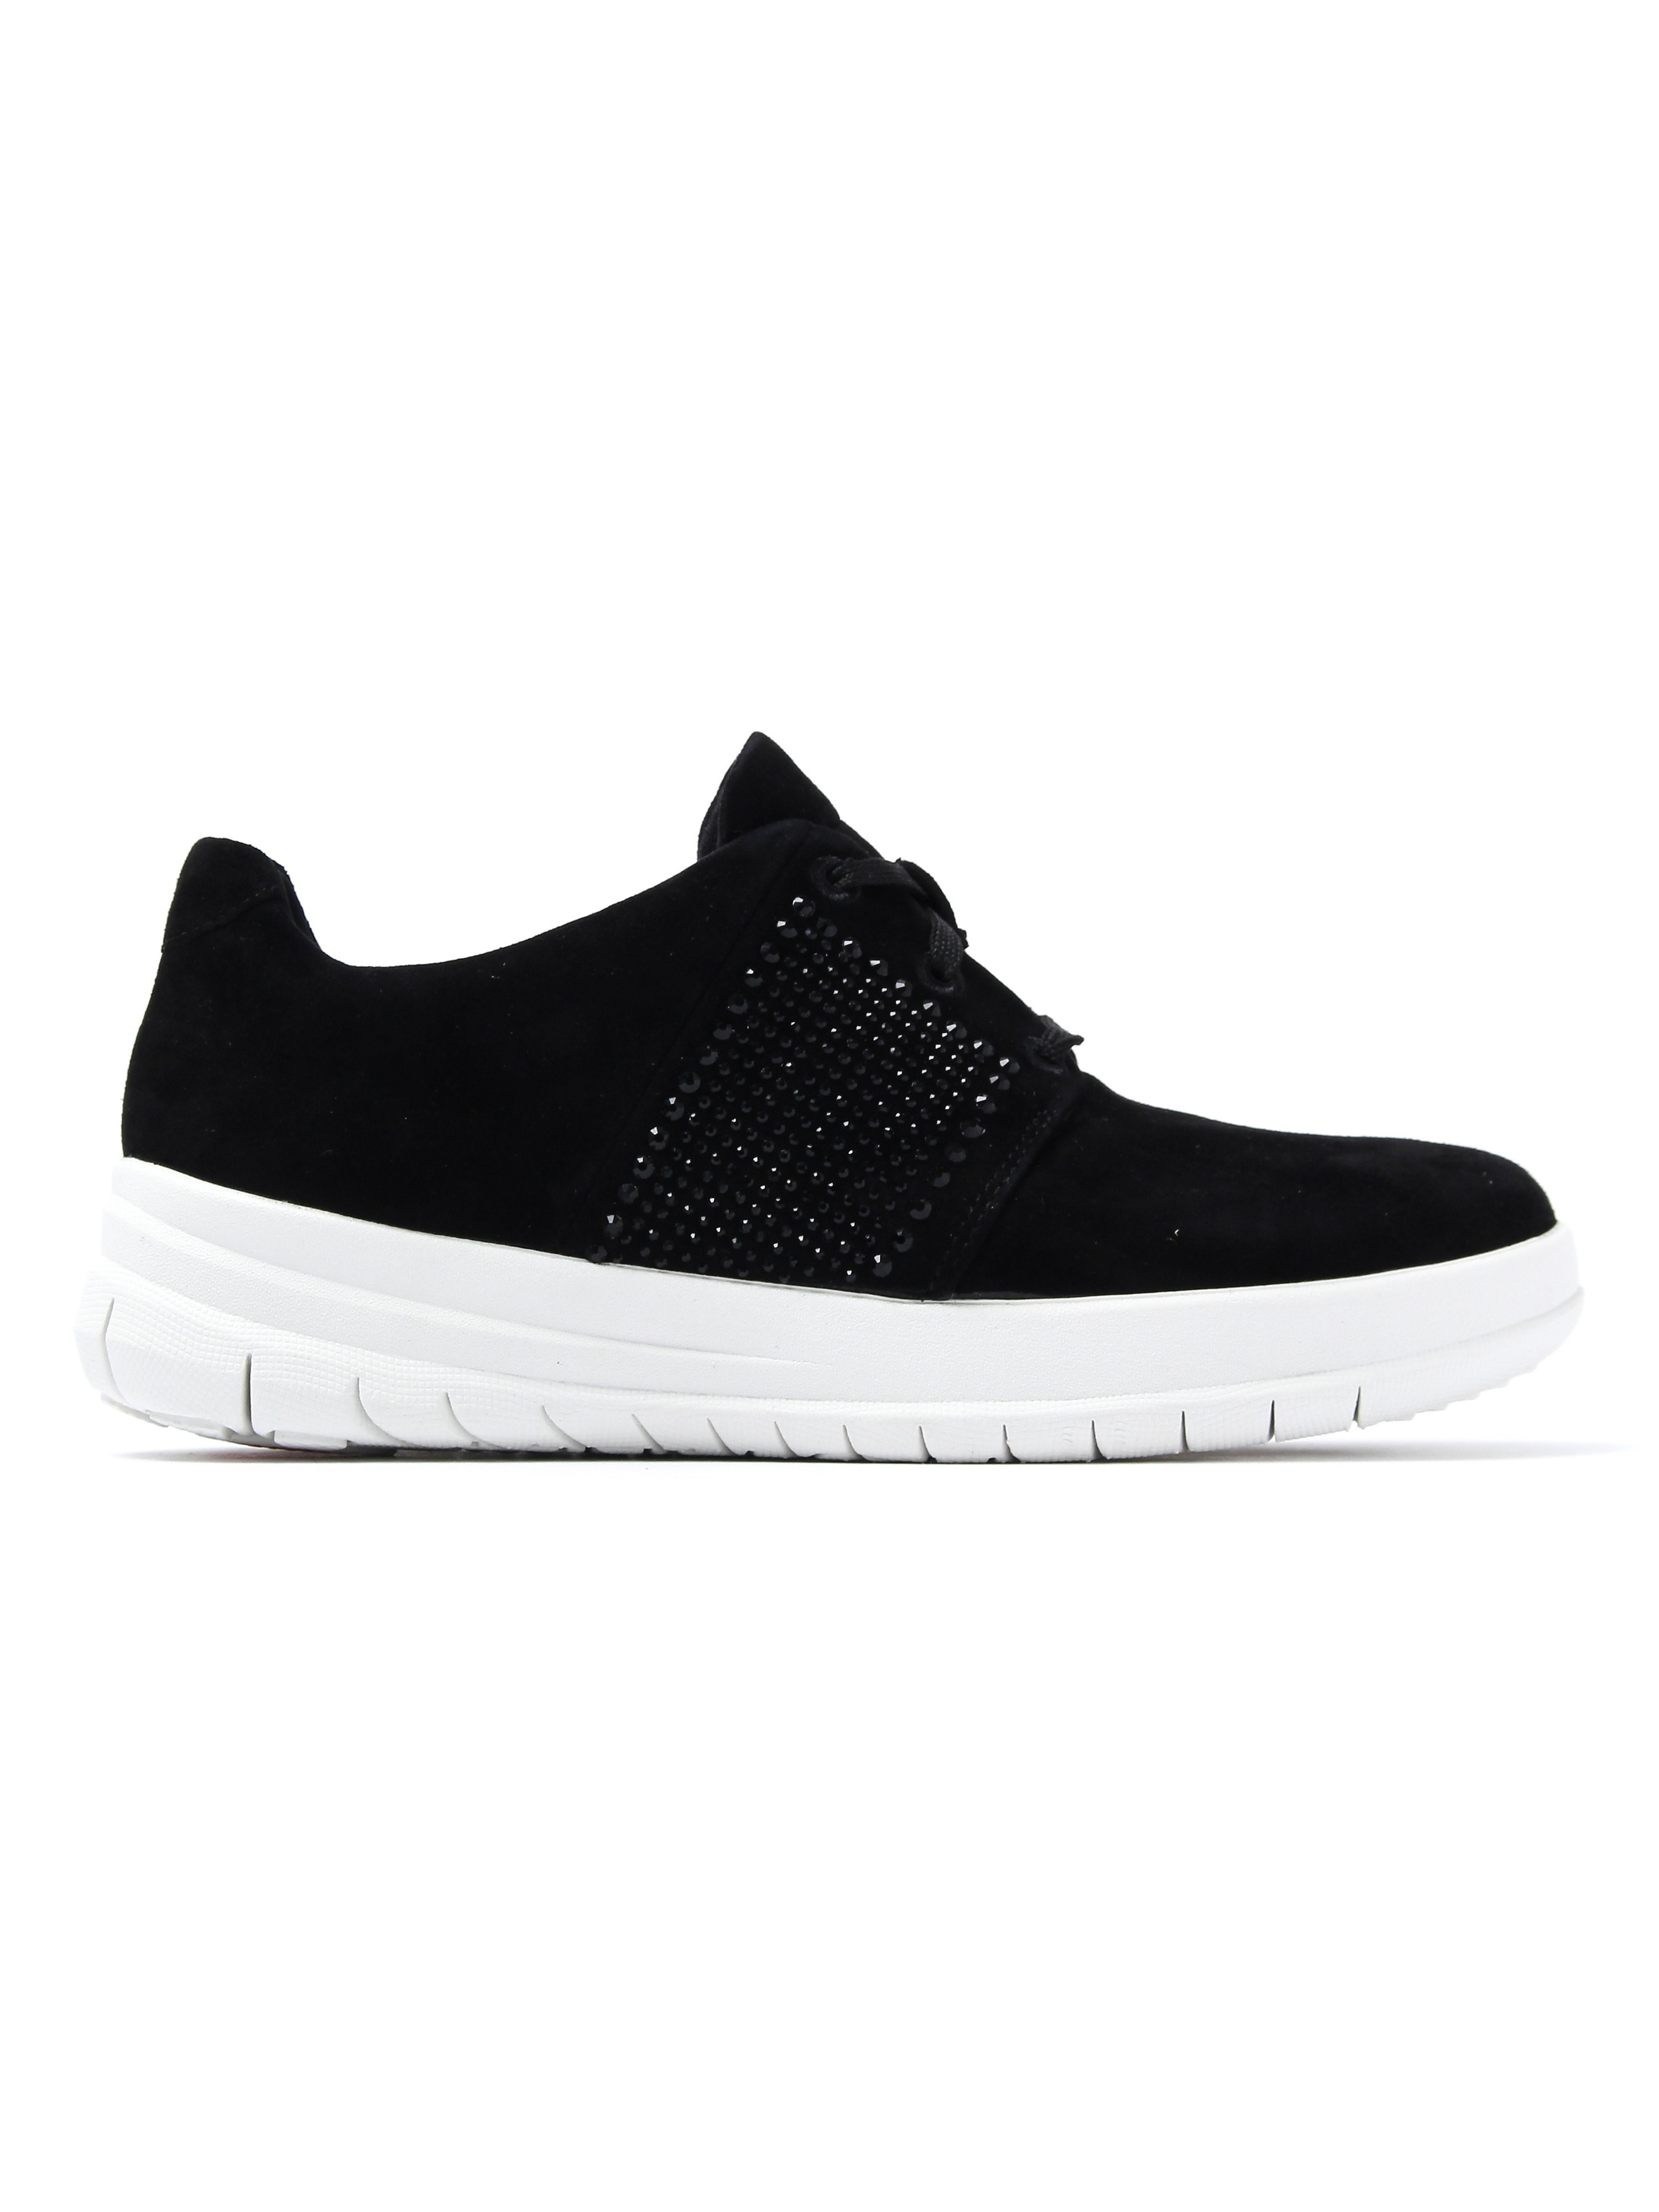 FitFlop Women's Sporty-Pop X-Crystal Trainers - Black